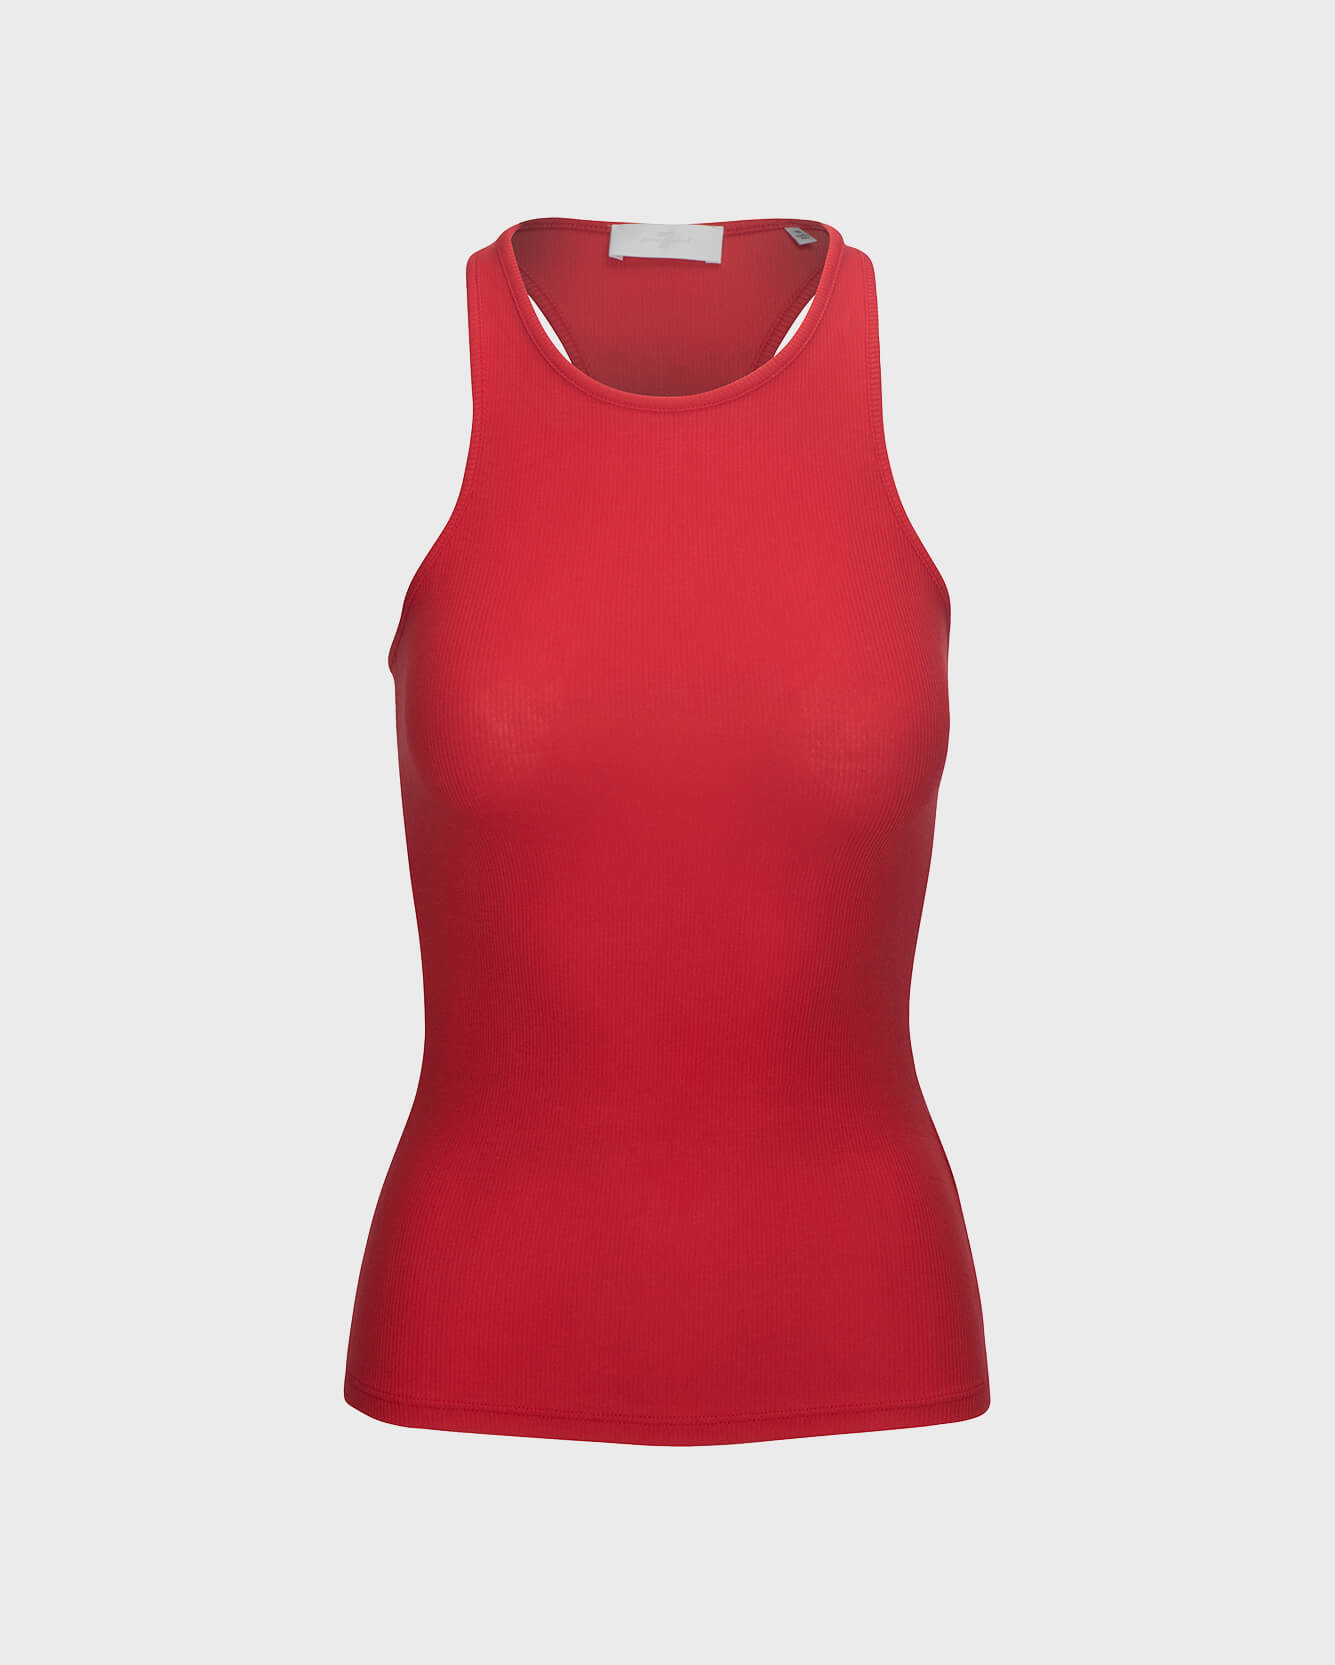 Image of Racer Back Tank in Rouge